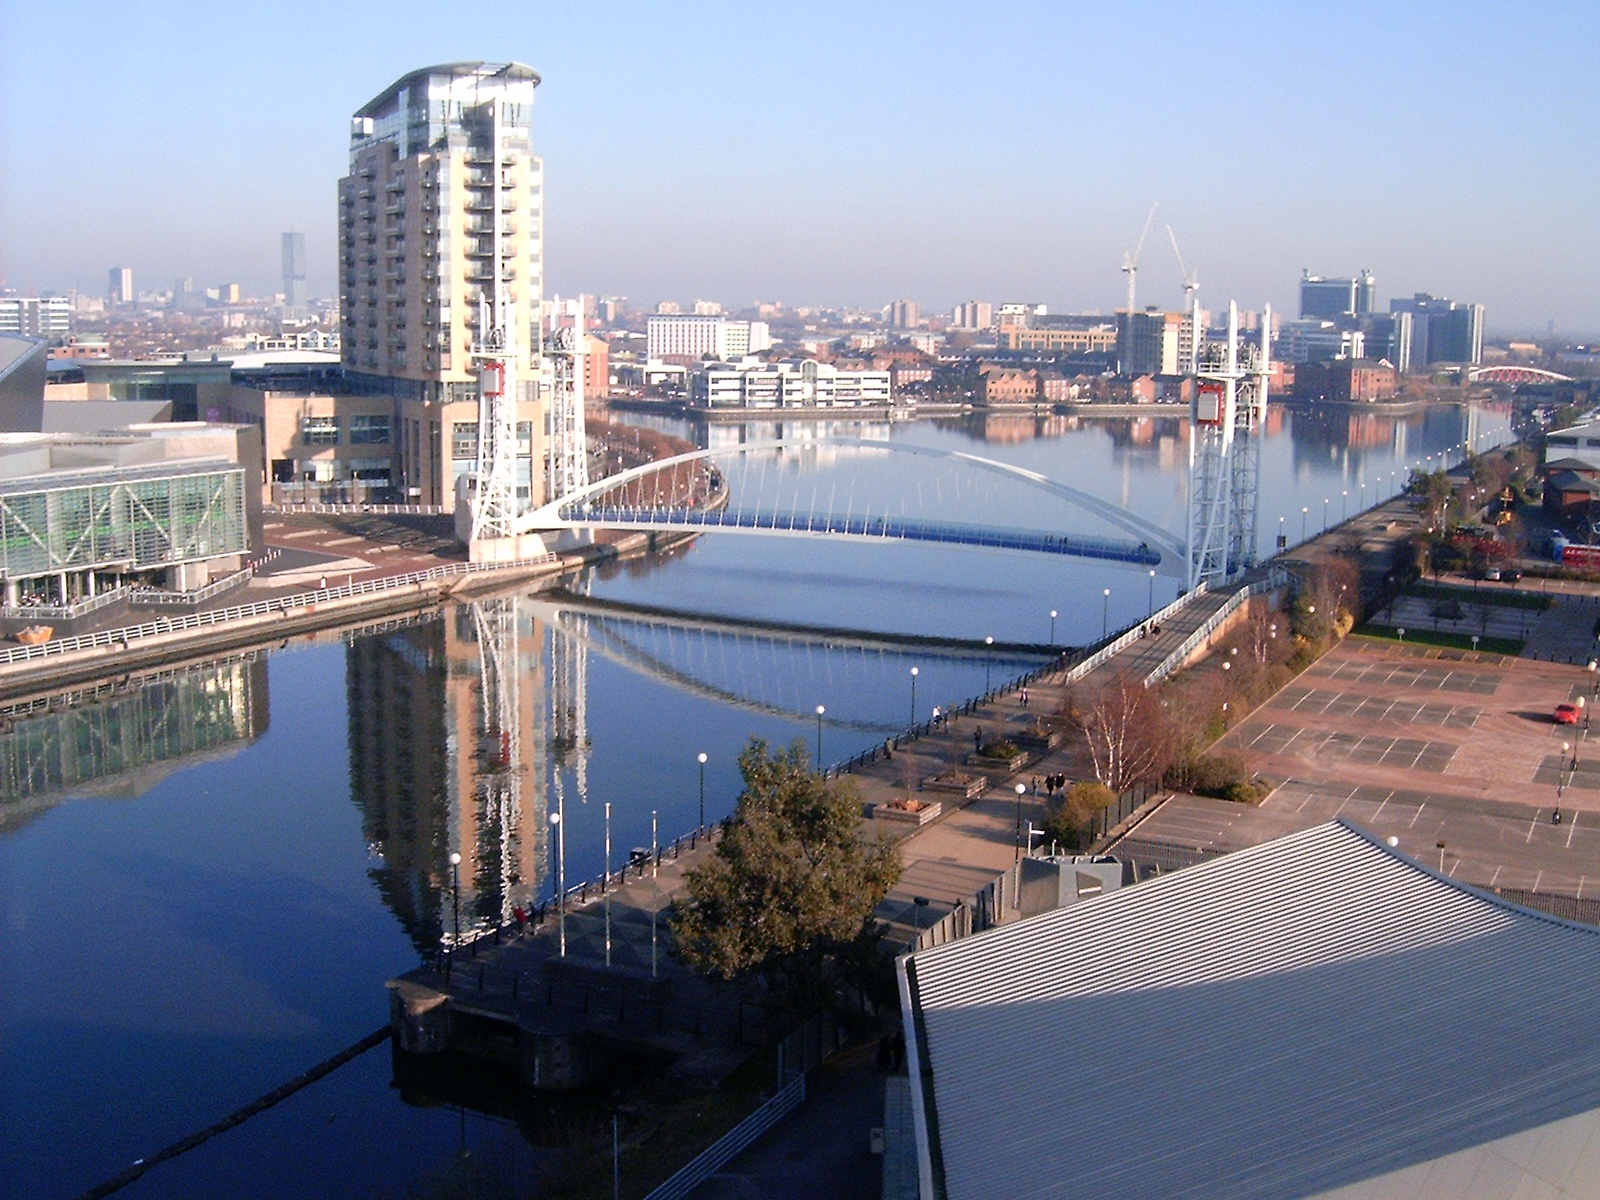 An image of the Salford Quays, an area of North West England covered by Mark Bates & Sons Ltd concrete